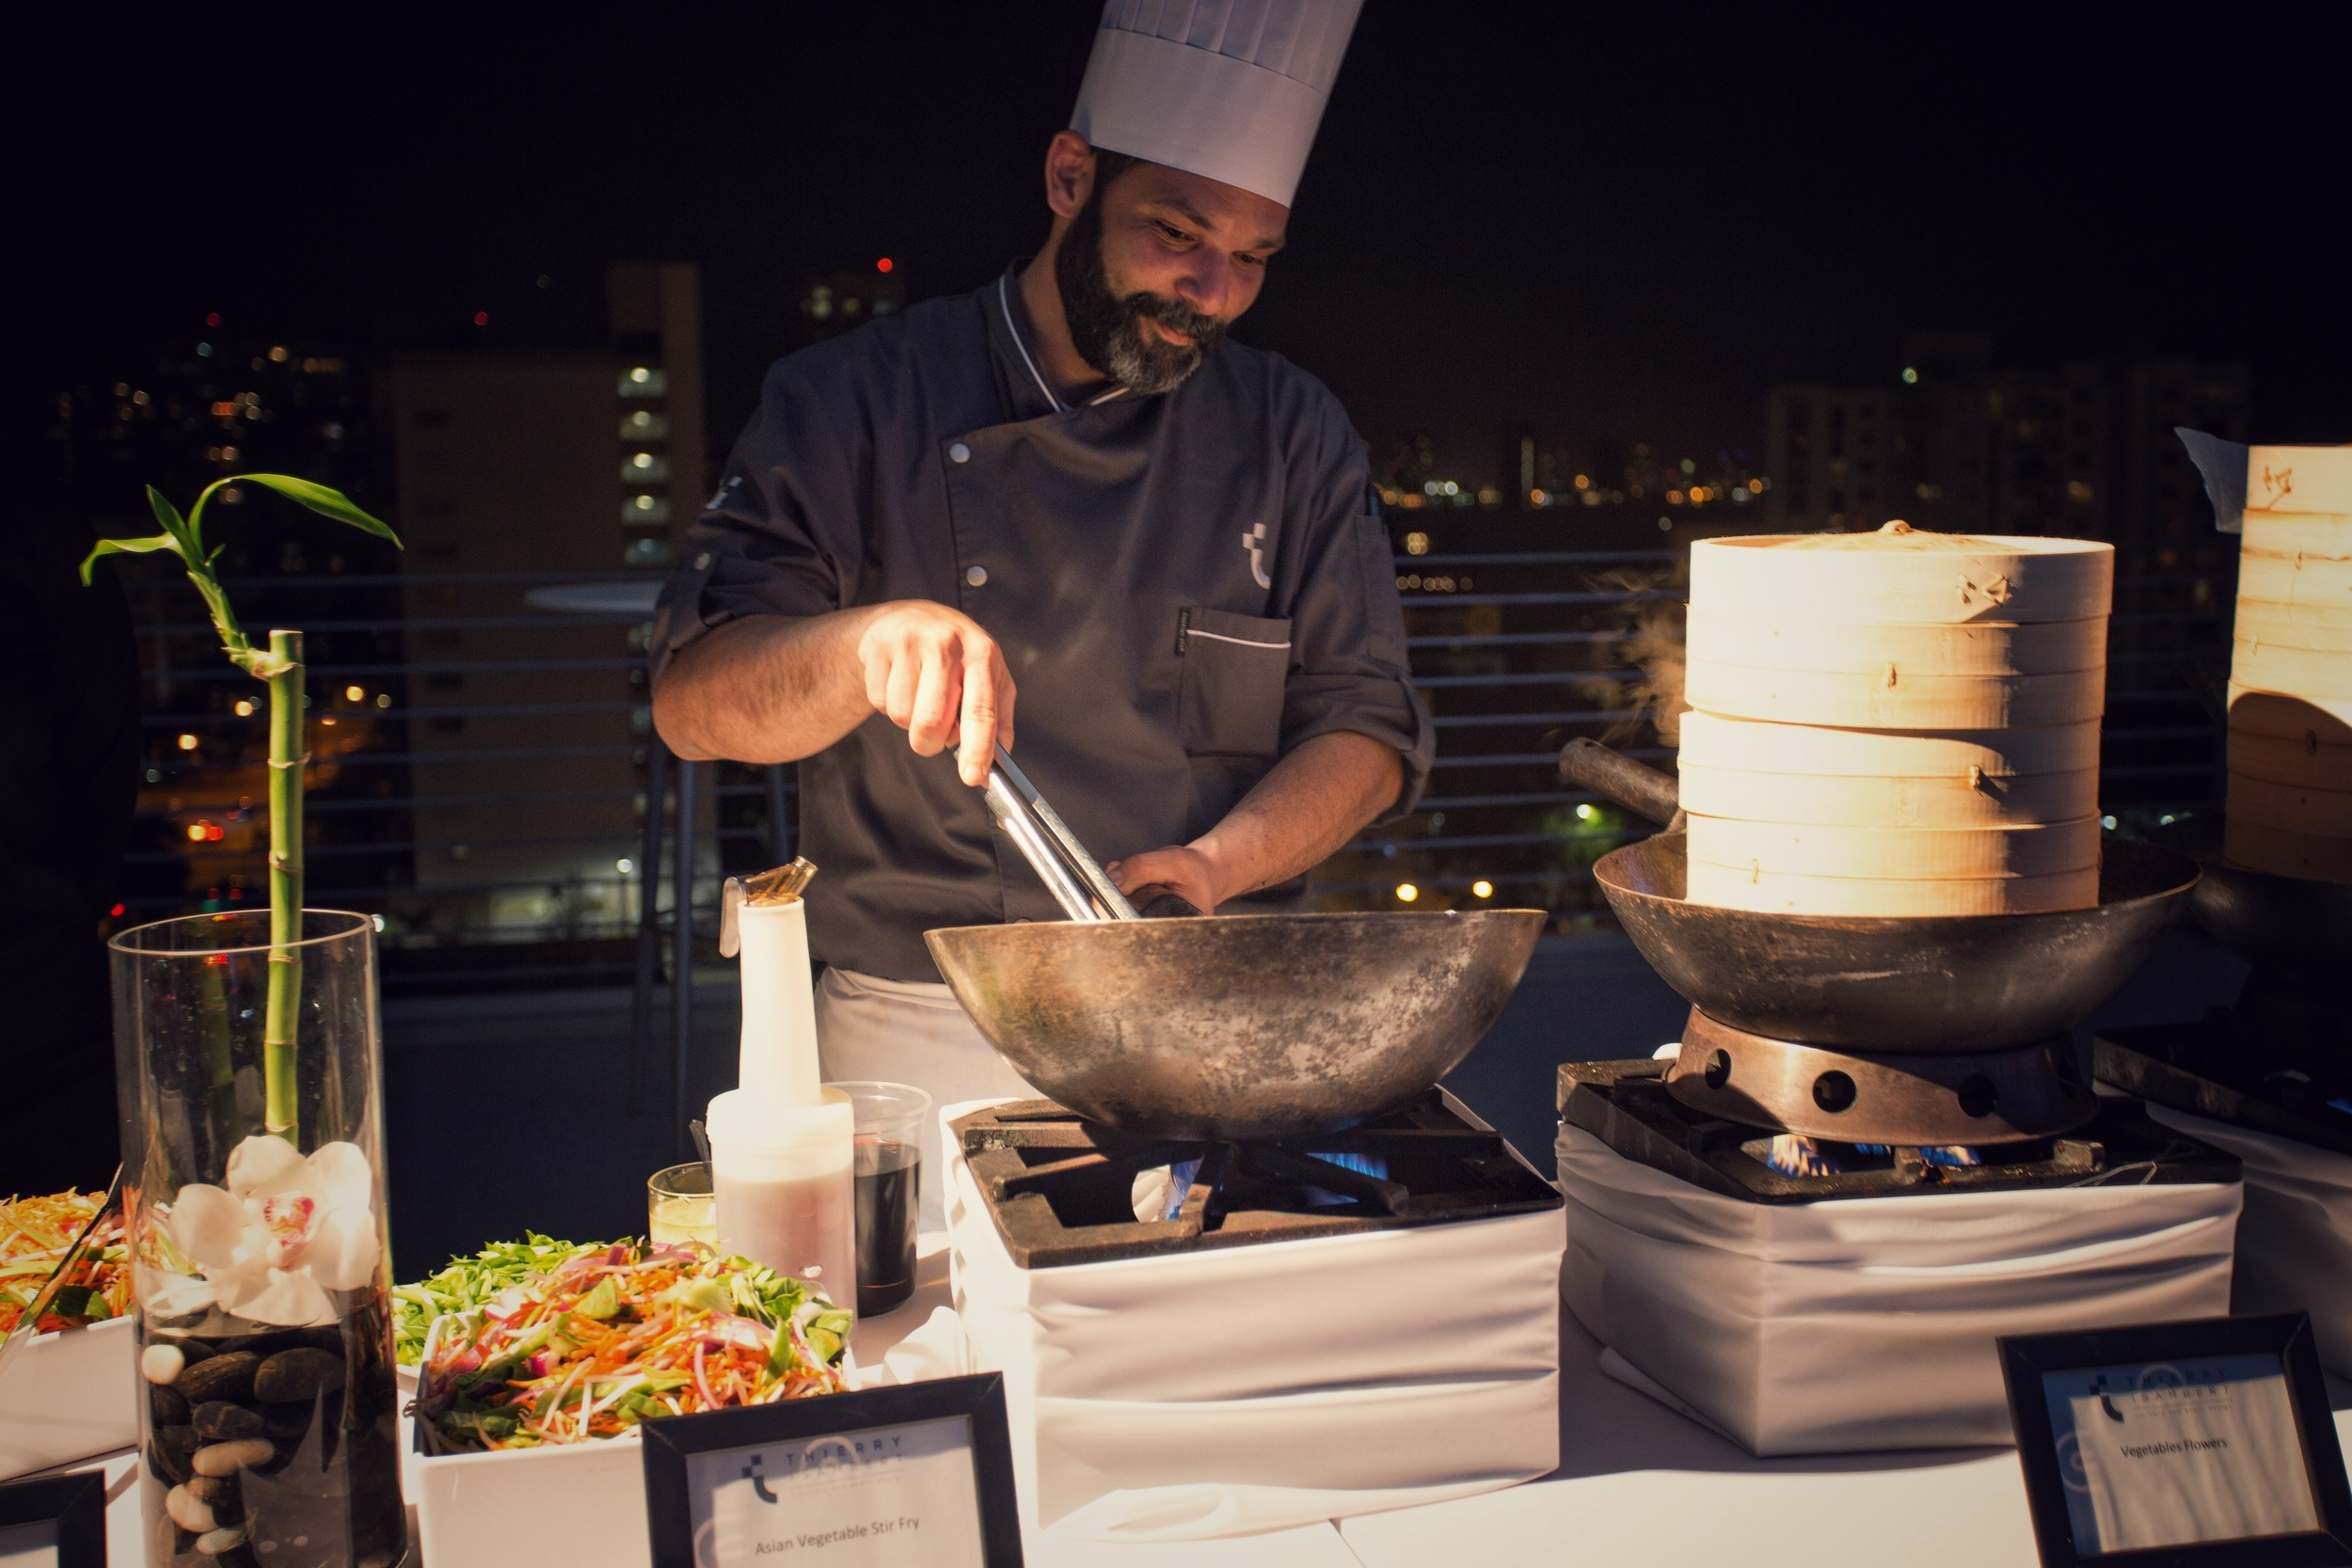 Asian Stir Fry at Corporate Event